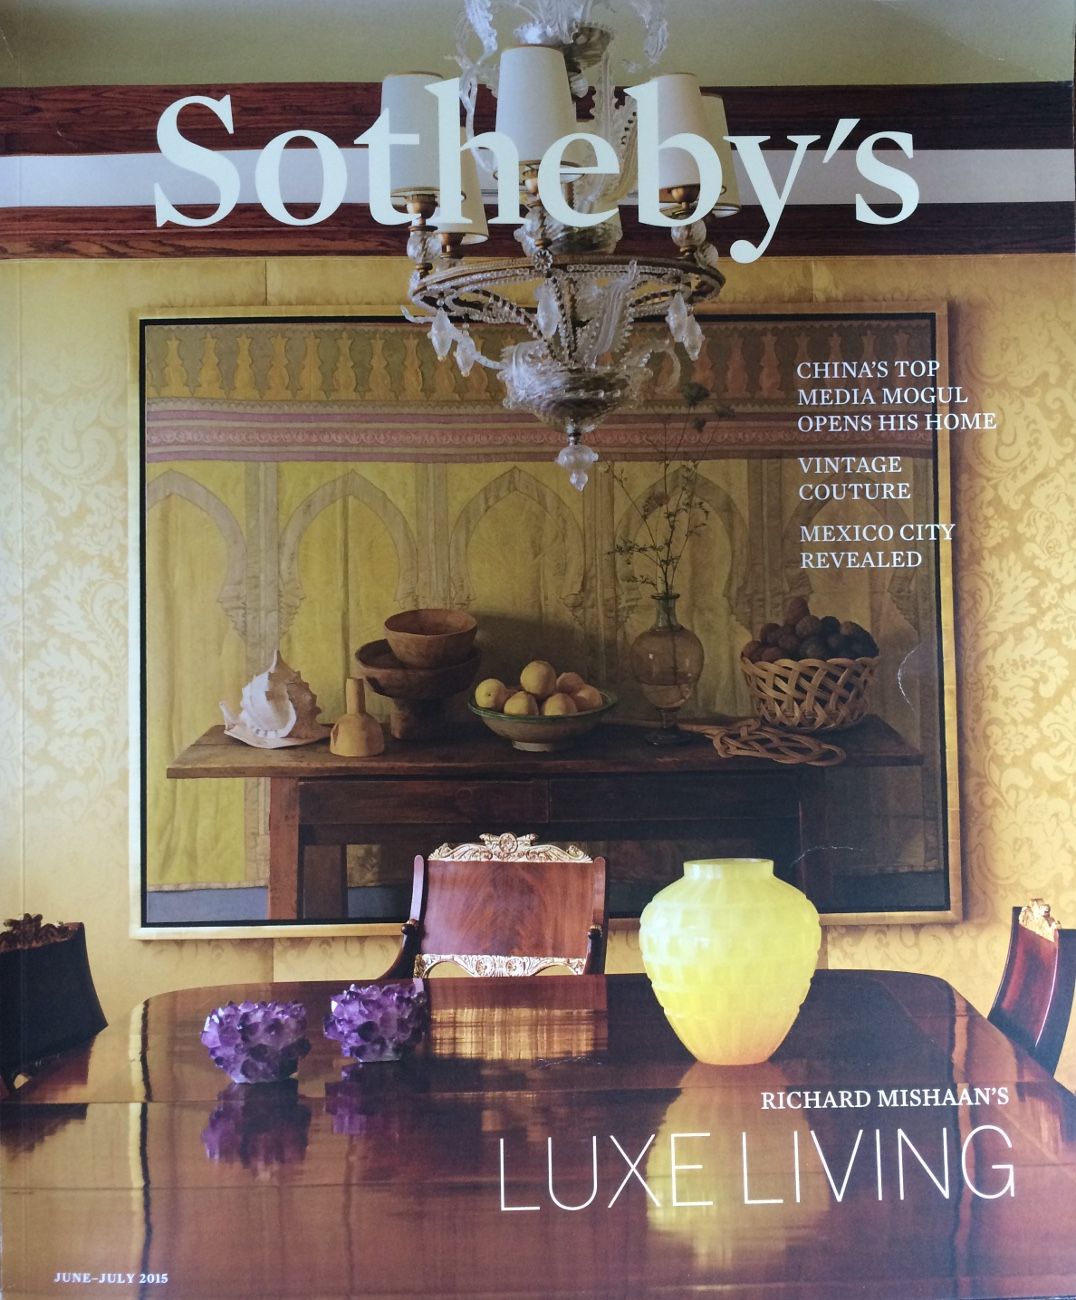 SOTHERBY'S JUNE/JULY 2015 Luxe Living